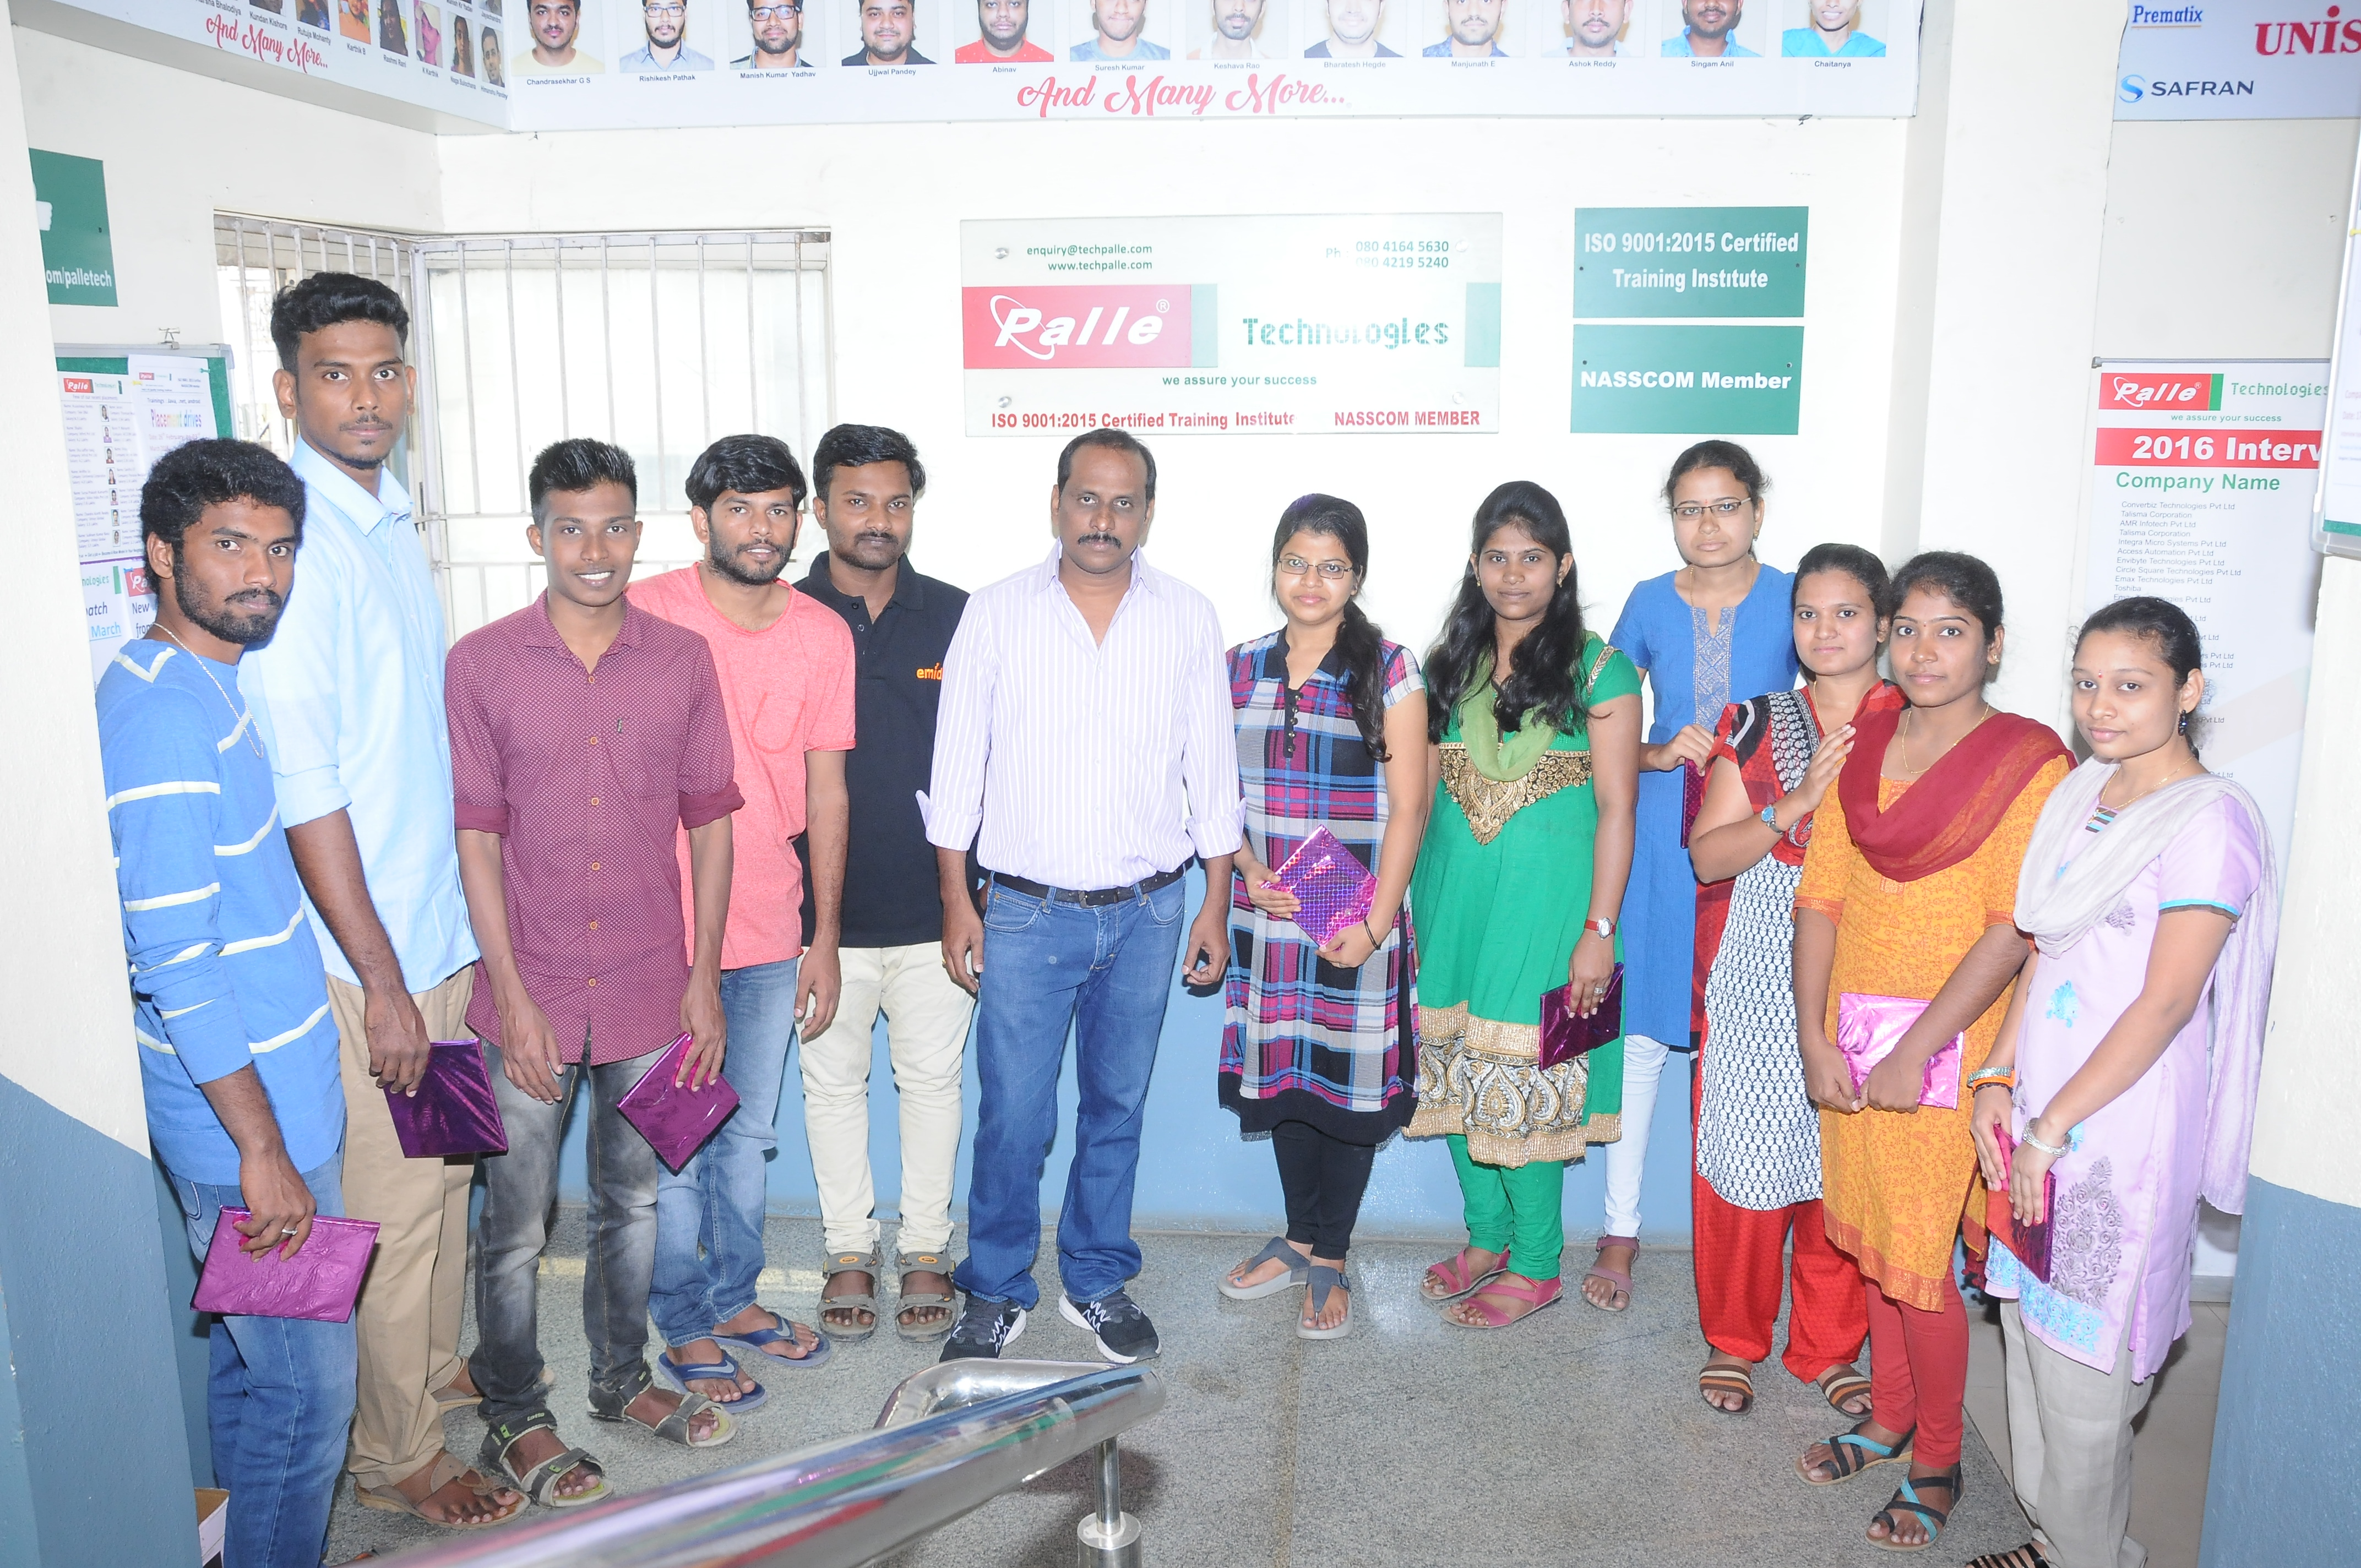 palle technologies placed student images